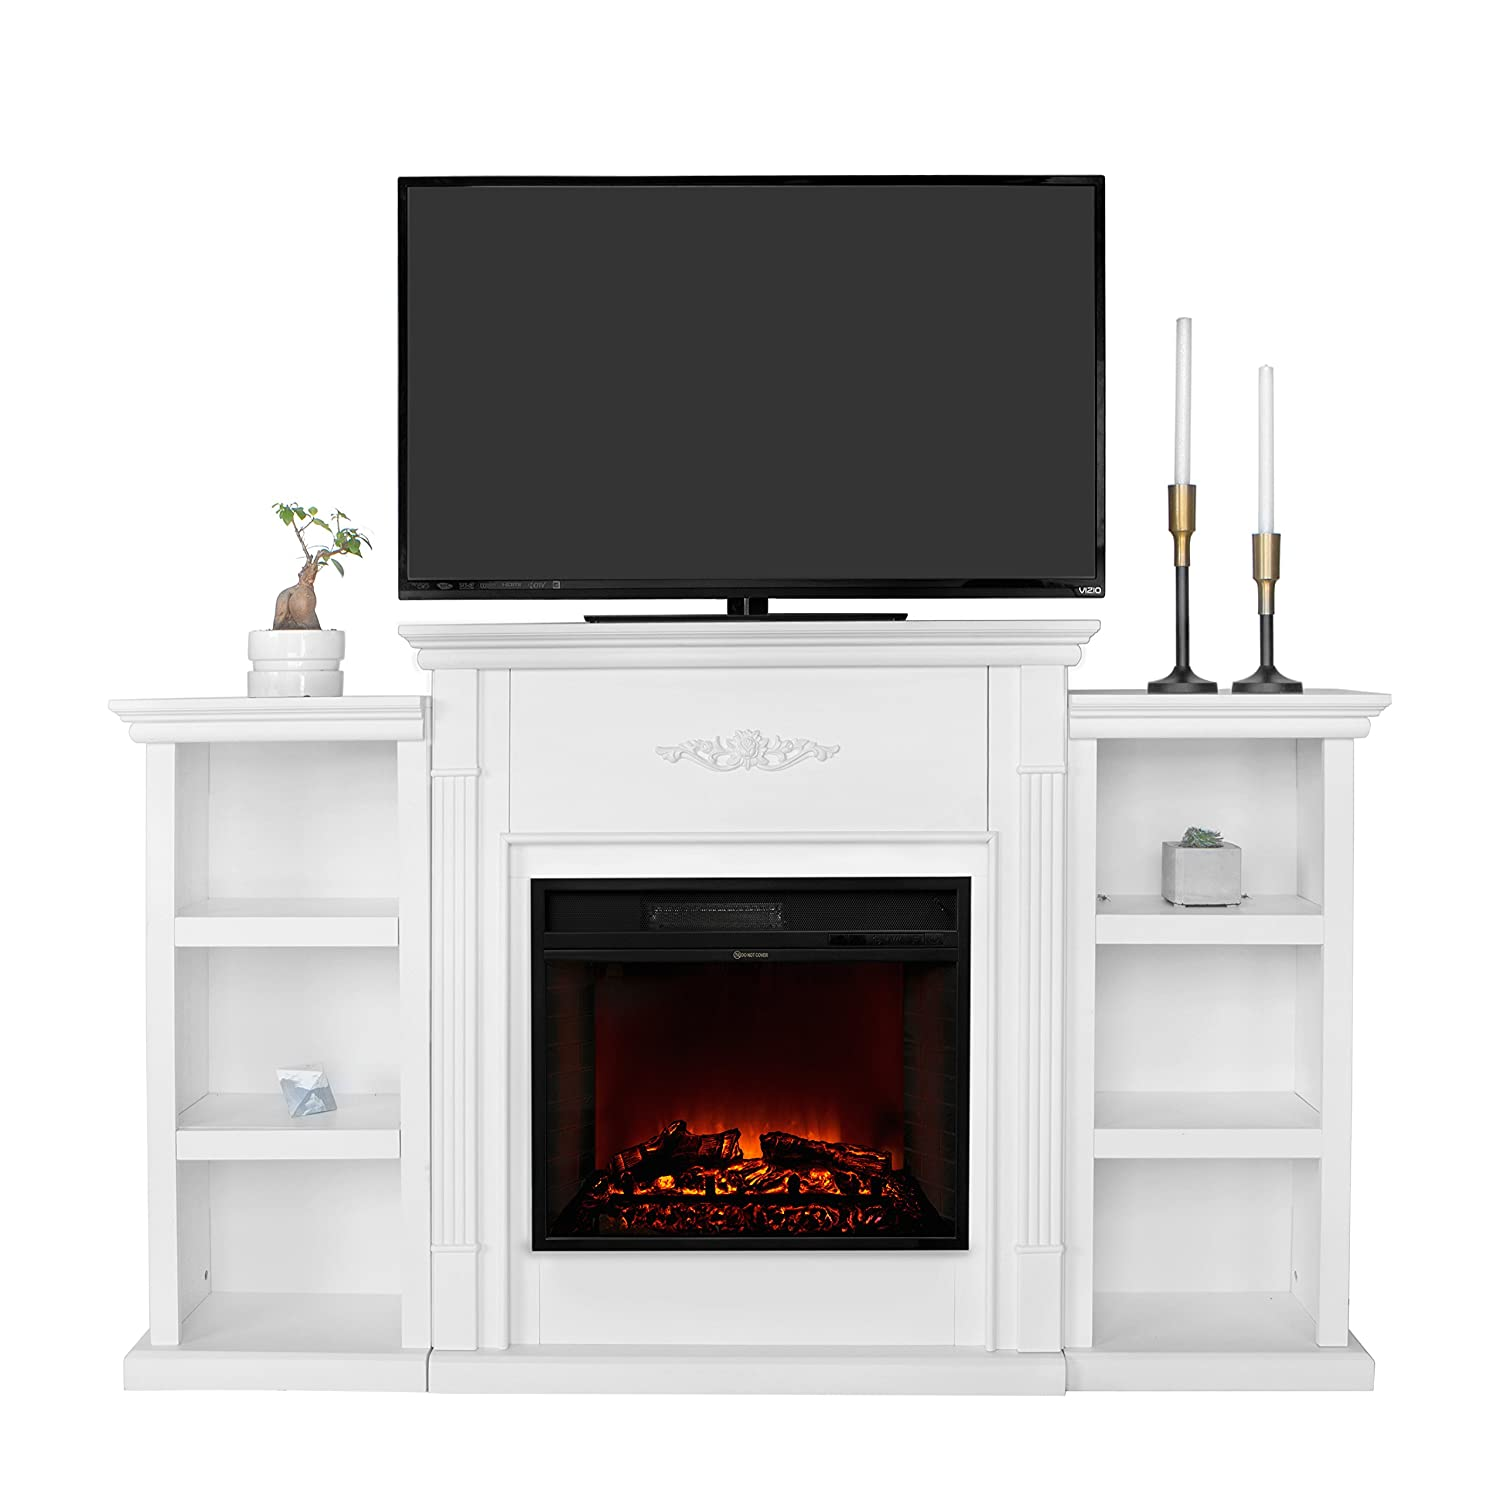 Amazoncom Xtremepowerus Electric Portable Fireplace W Tv Stand, Bookcases, Large